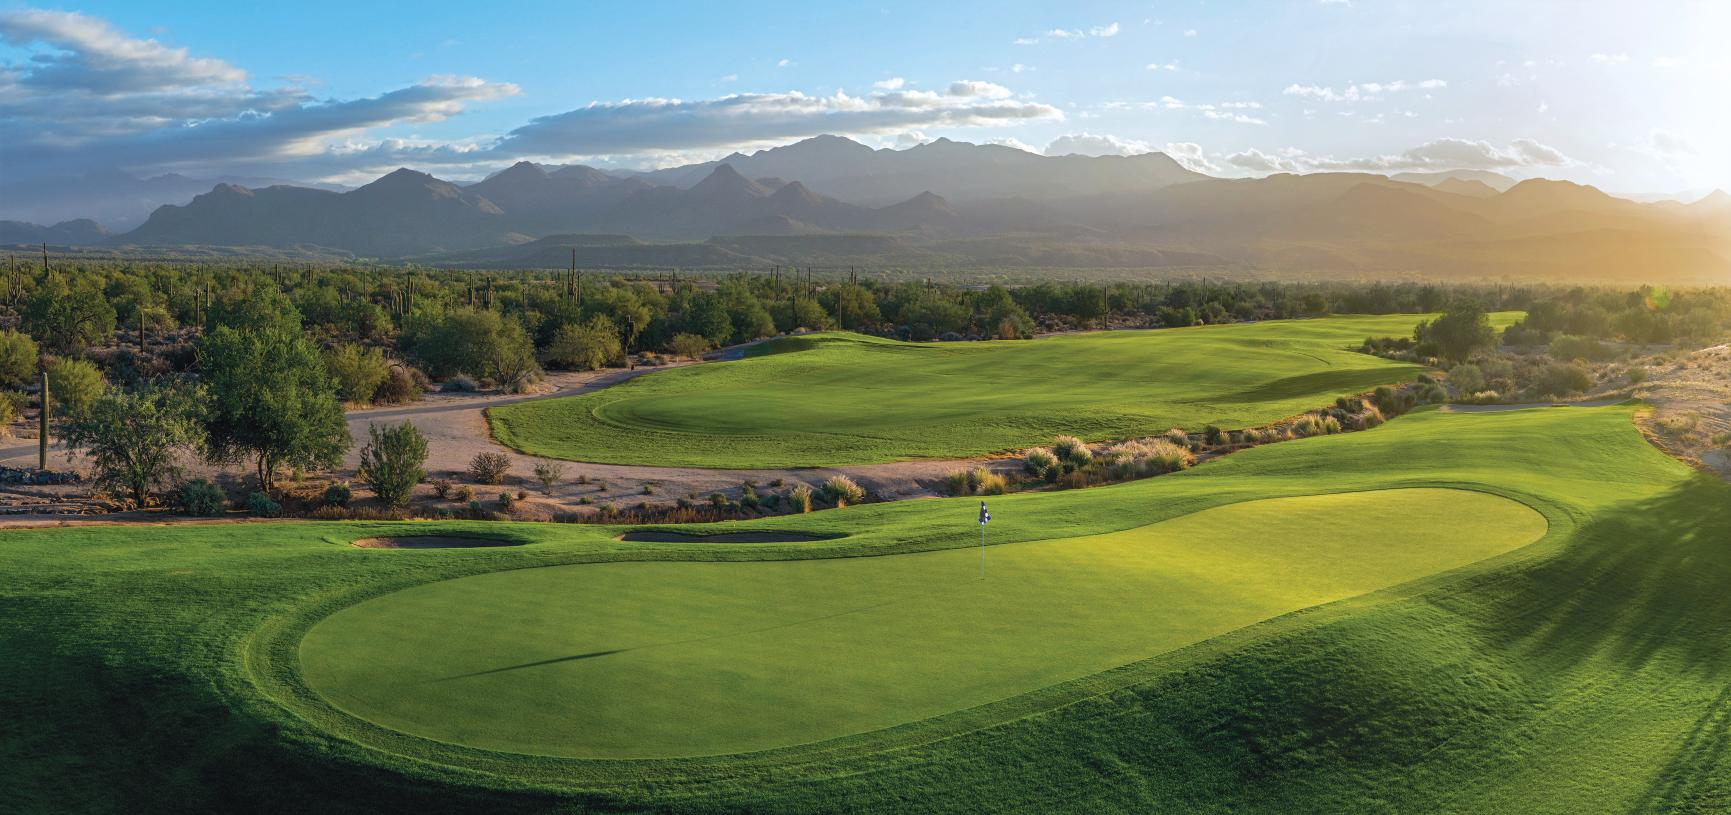 18-hole golf course with stunning mountain backdrop